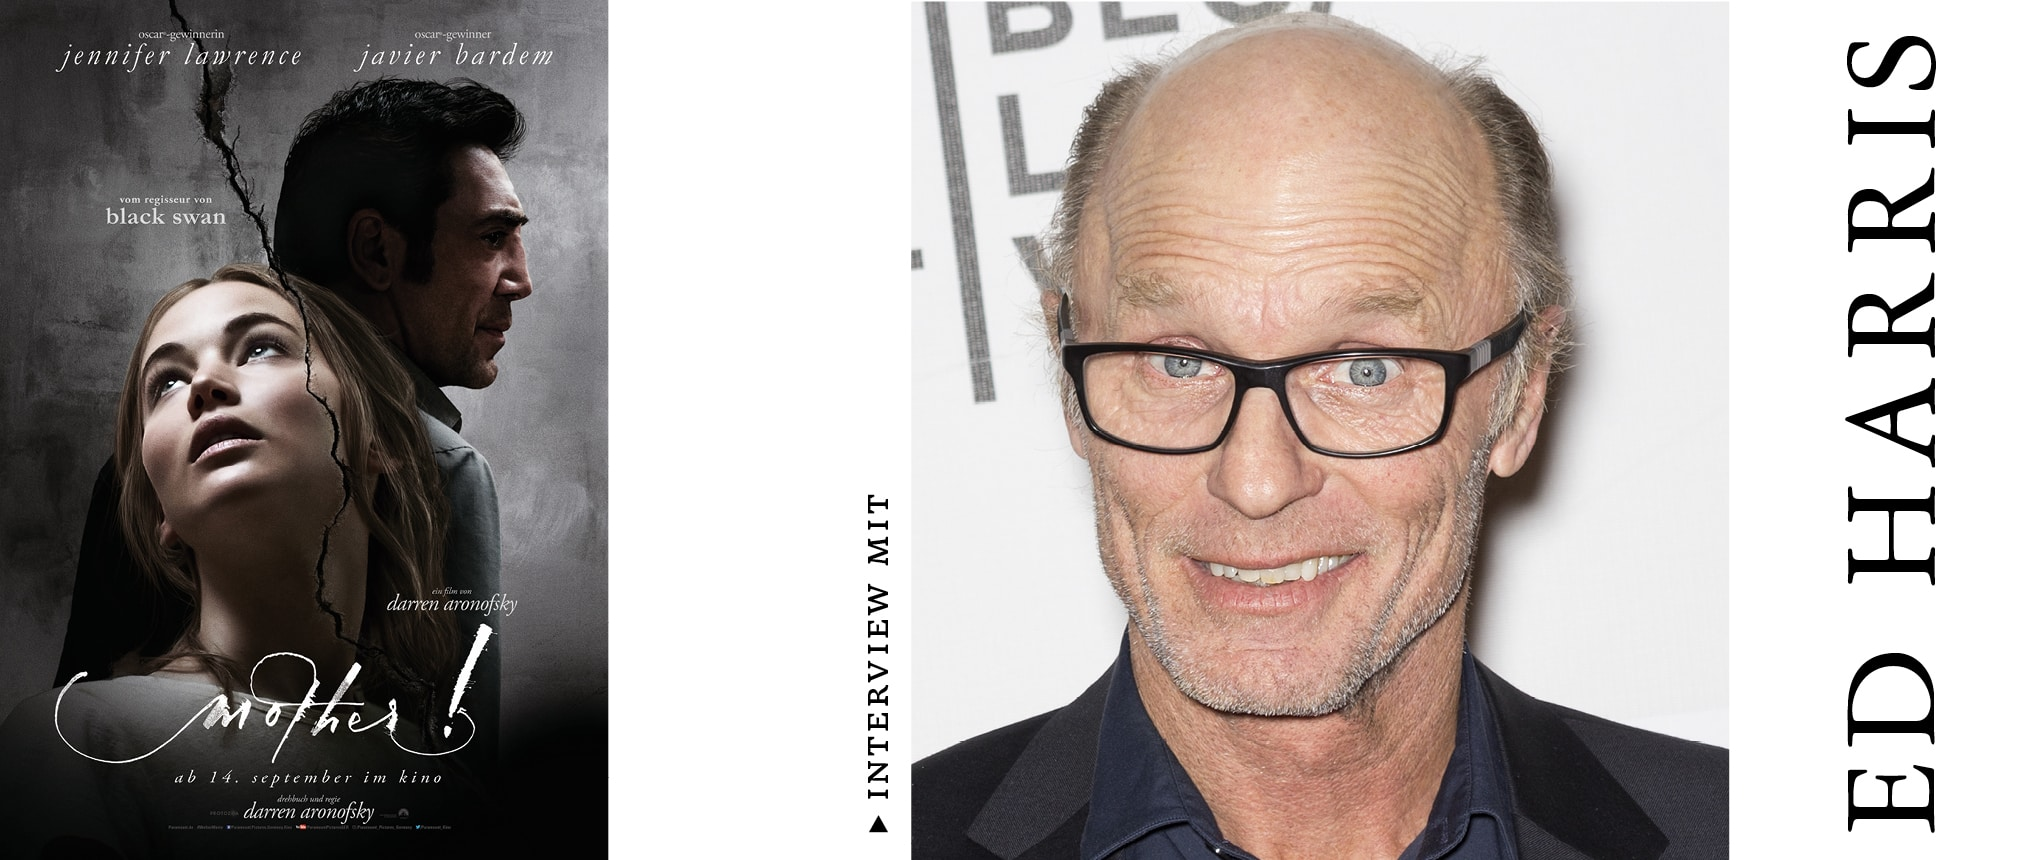 ED HARRIS IM INTERVIEW ZU MOTHER!